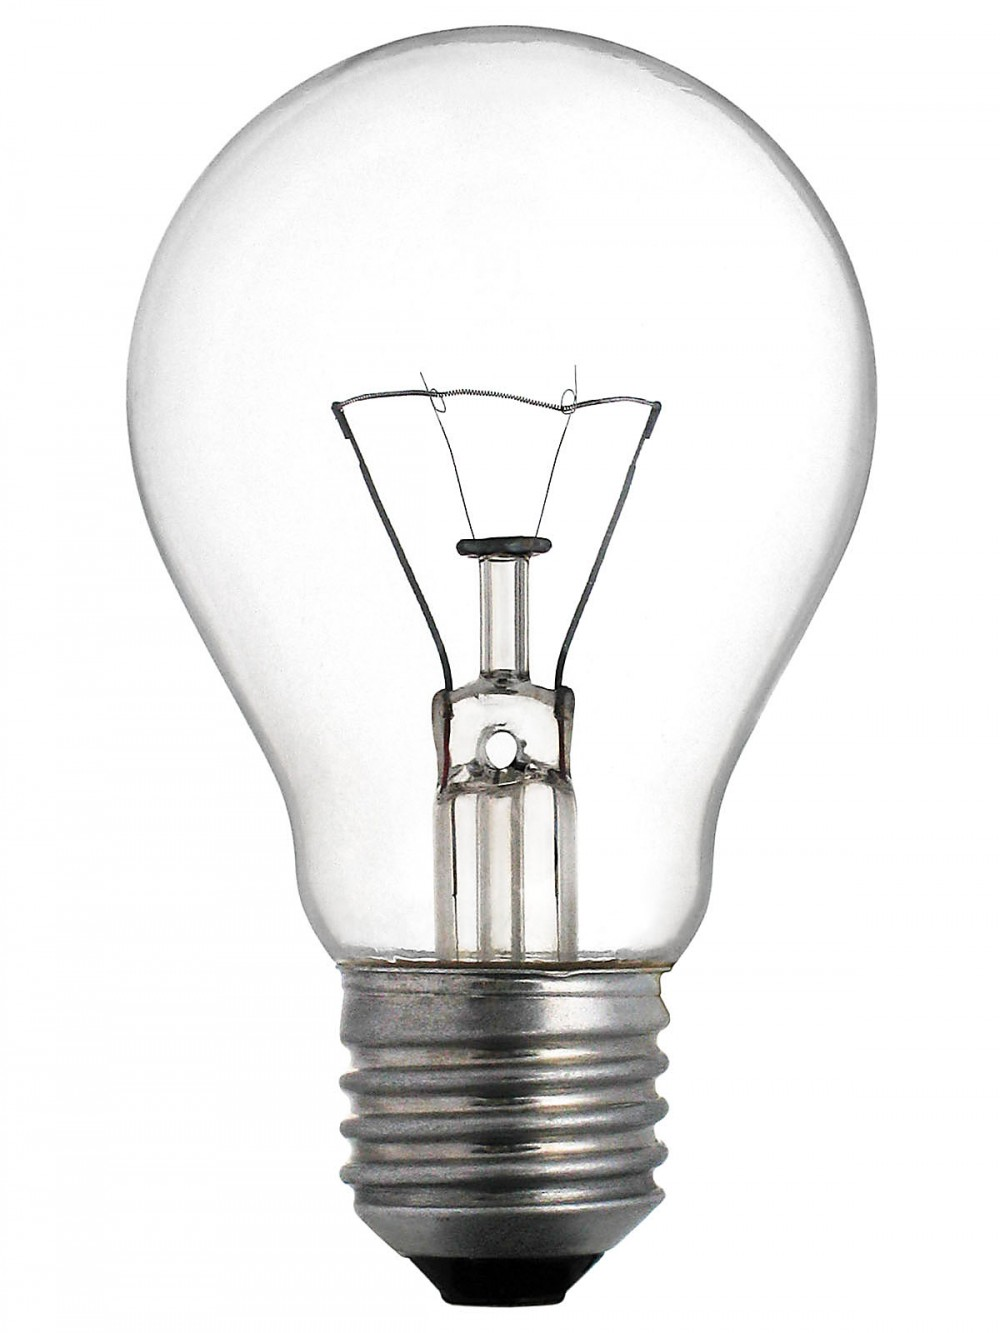 Montenegro: Incandescent bulbs of 100 W or more to be banned from July 2018 on